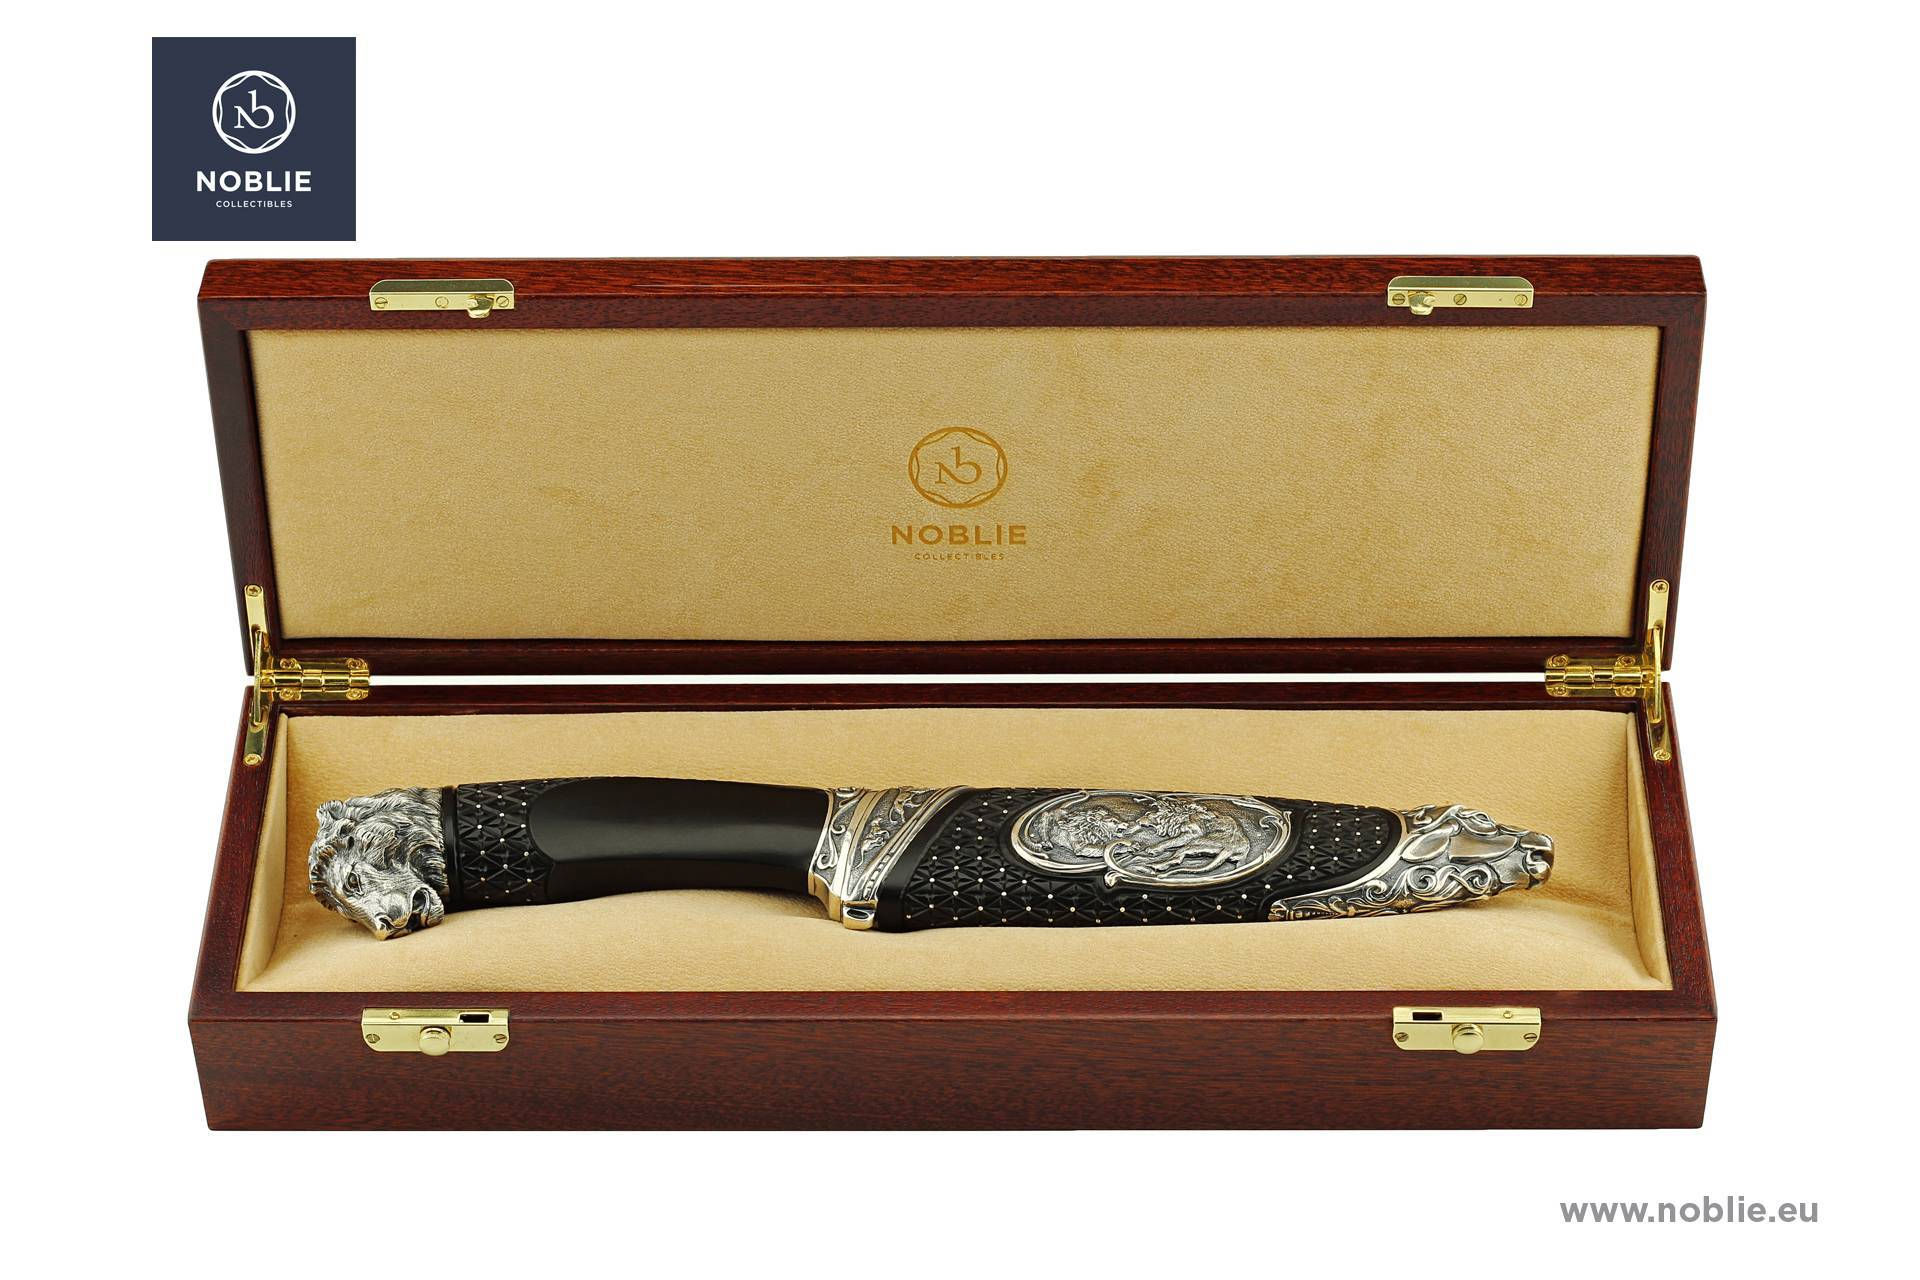 Forbes Hungary and Noblie Company presented a collection of knives and gifts for men